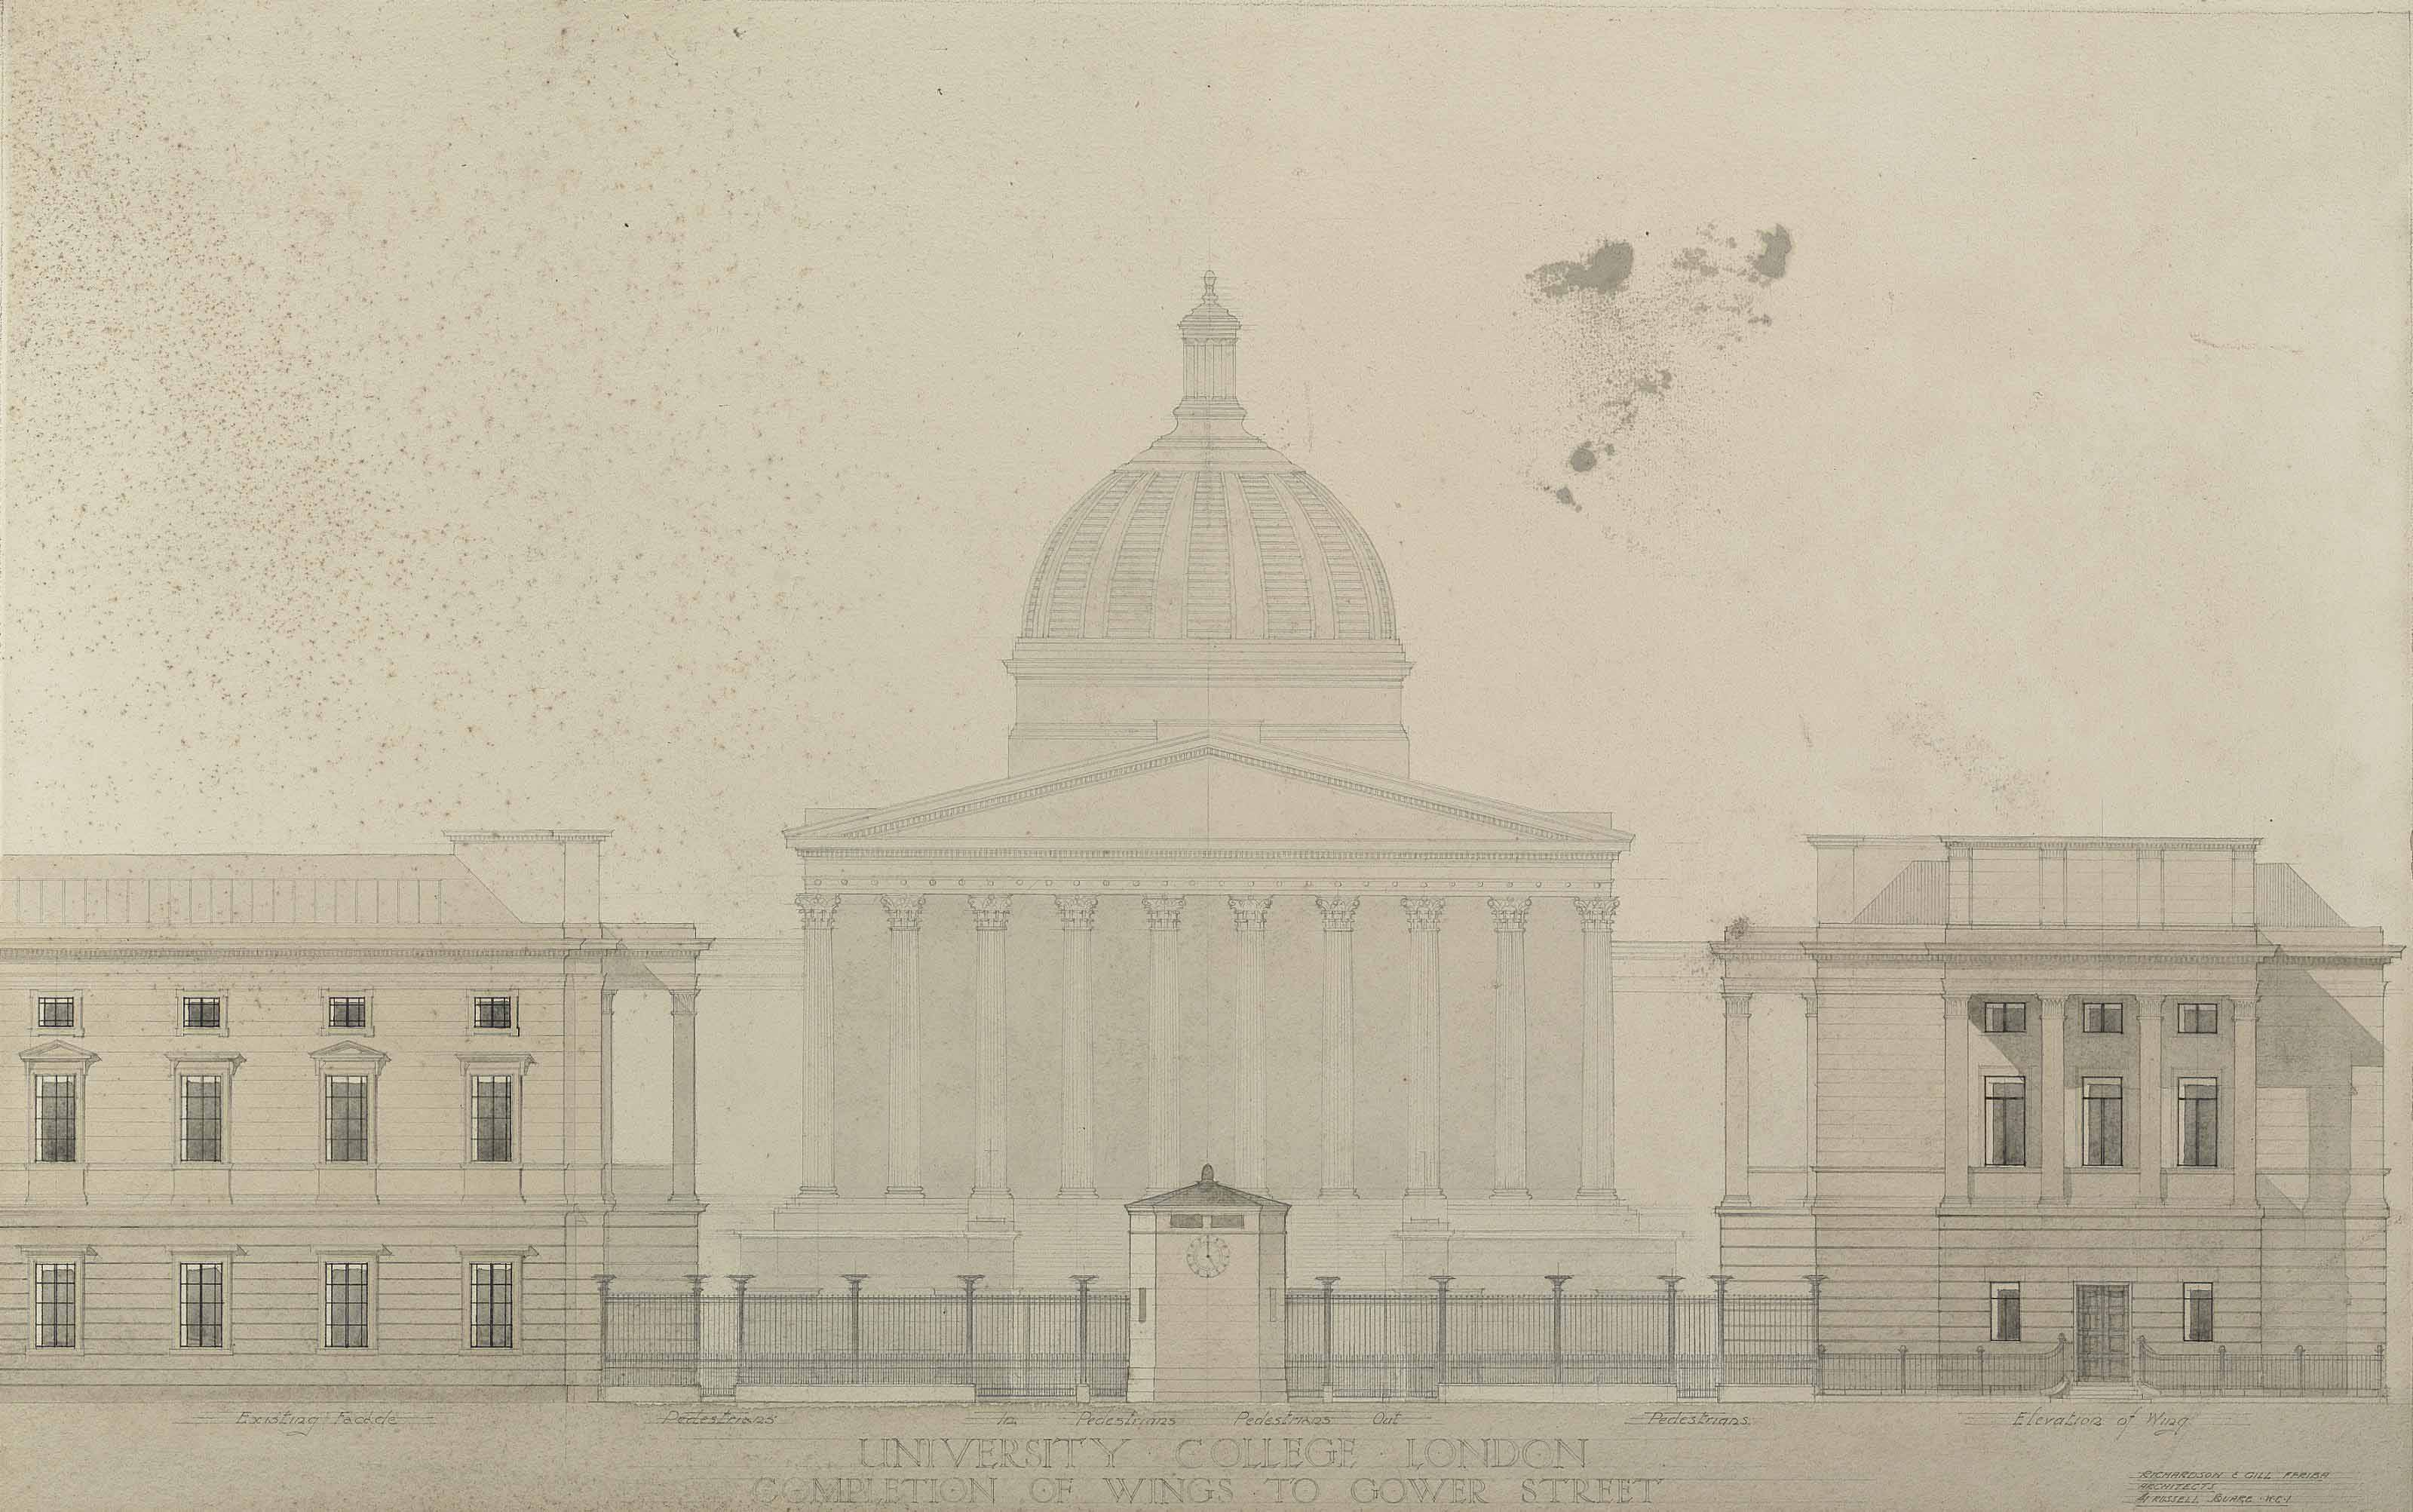 Design for University College London, Completion of Wings to Gower Street (illustrated); and  A watercolour of Darwin Building, University College London